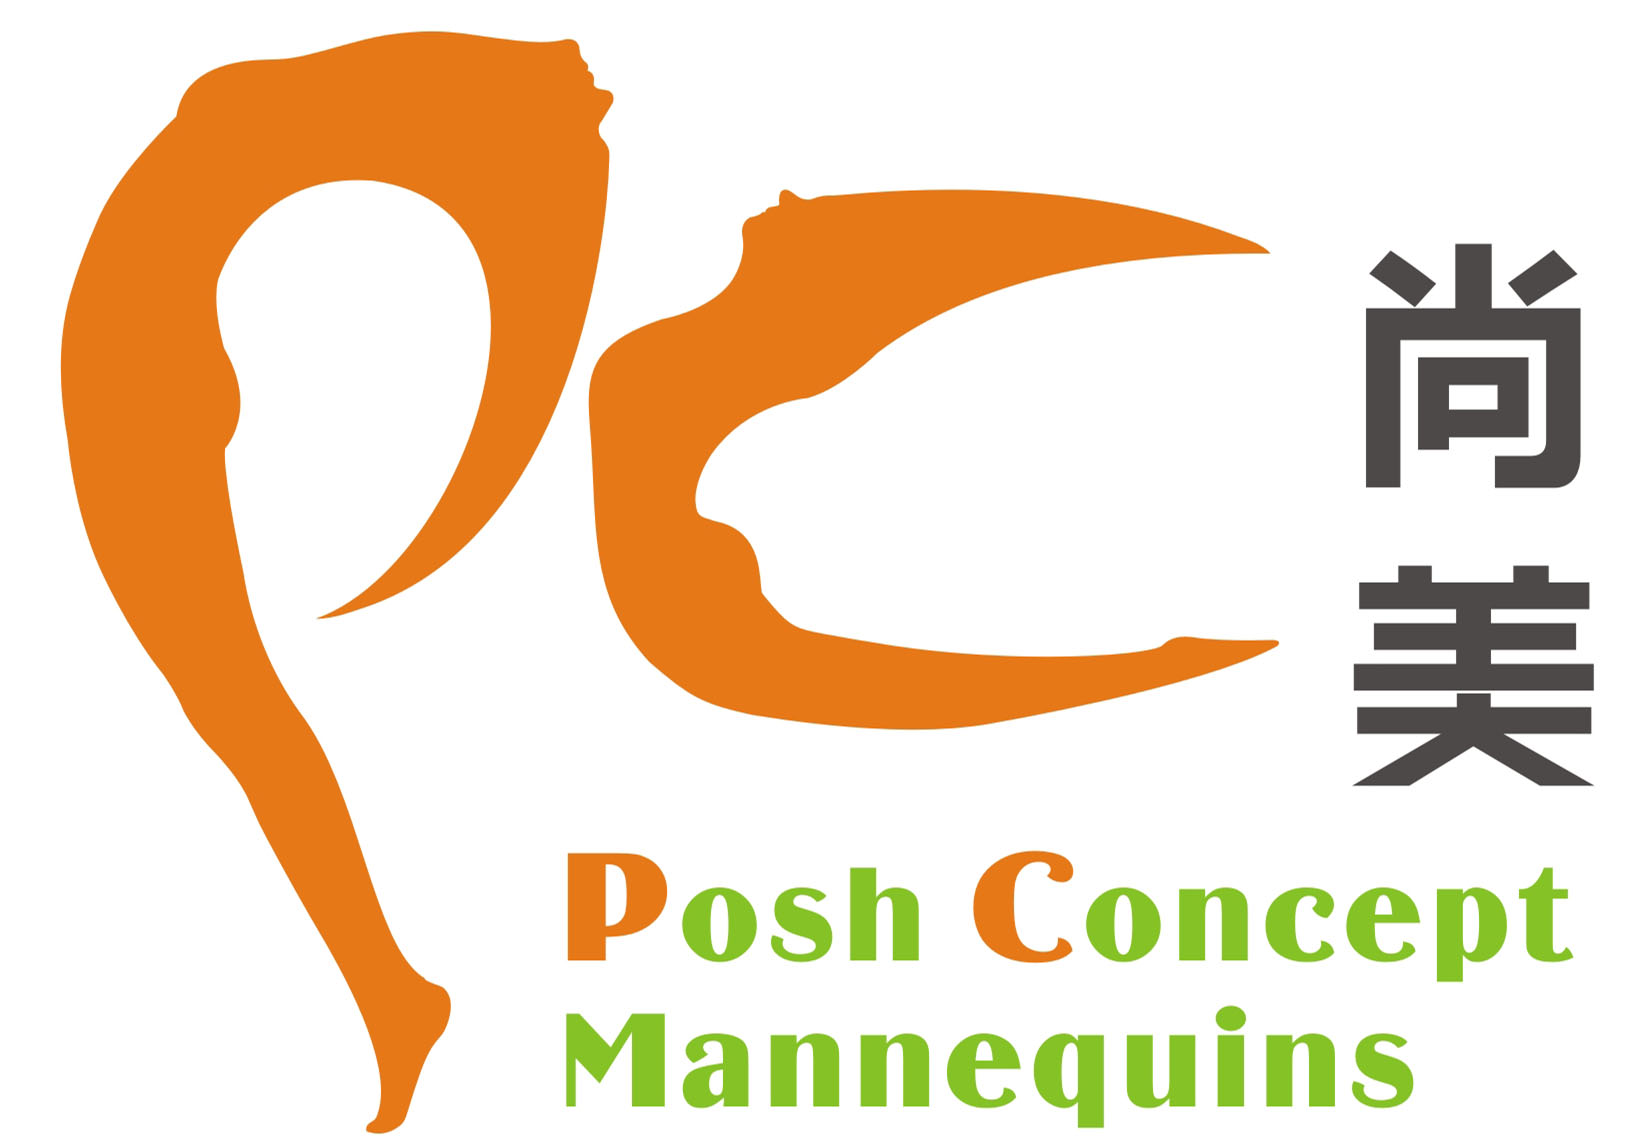 Posh Concept Mannequins Co.,Ltd